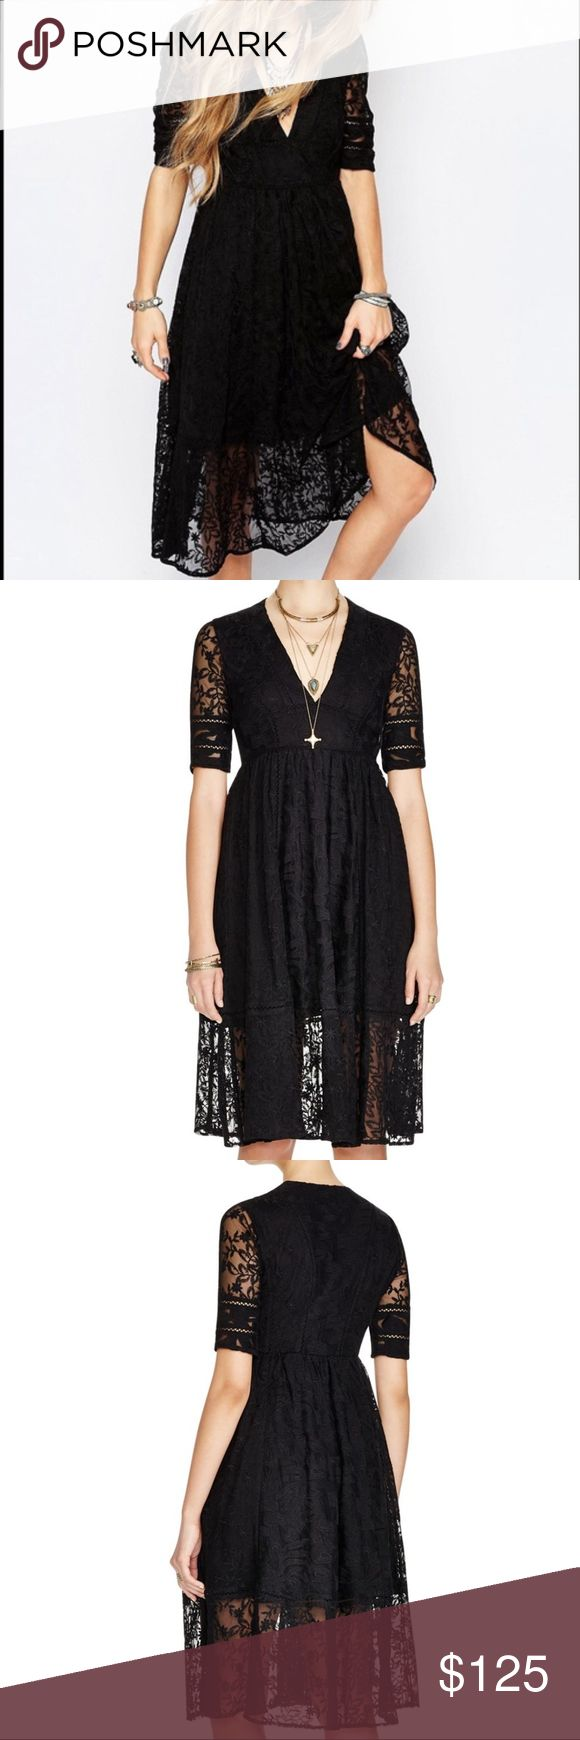 FREE PEOPLE MOUNTAIN LAUREL DRESS Lace crochet midi dress featuring a V-neckline and short sleeves.  This A-line silhouette has a flowy skirt and a sheer lace hem.  Lined.  Care/Import  Hand Wash Cold  Import Free People Dresses Midi